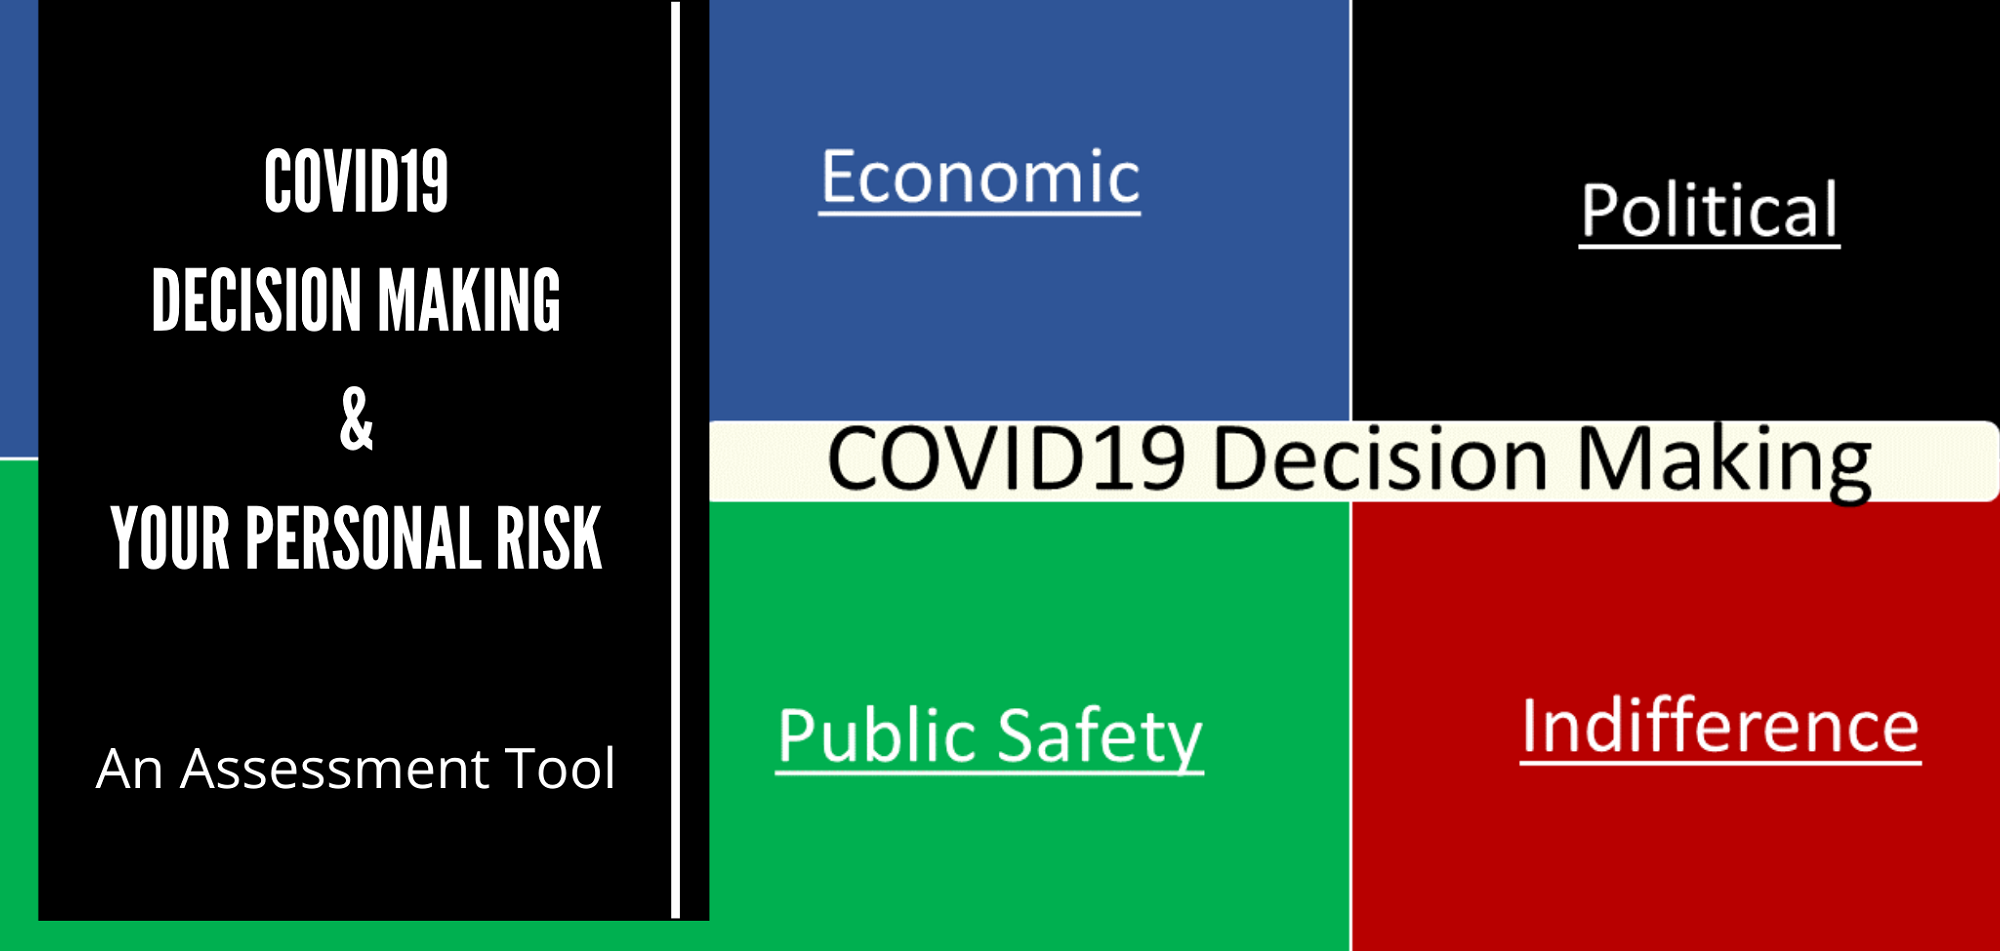 COVID19 Decision Making Quadrants